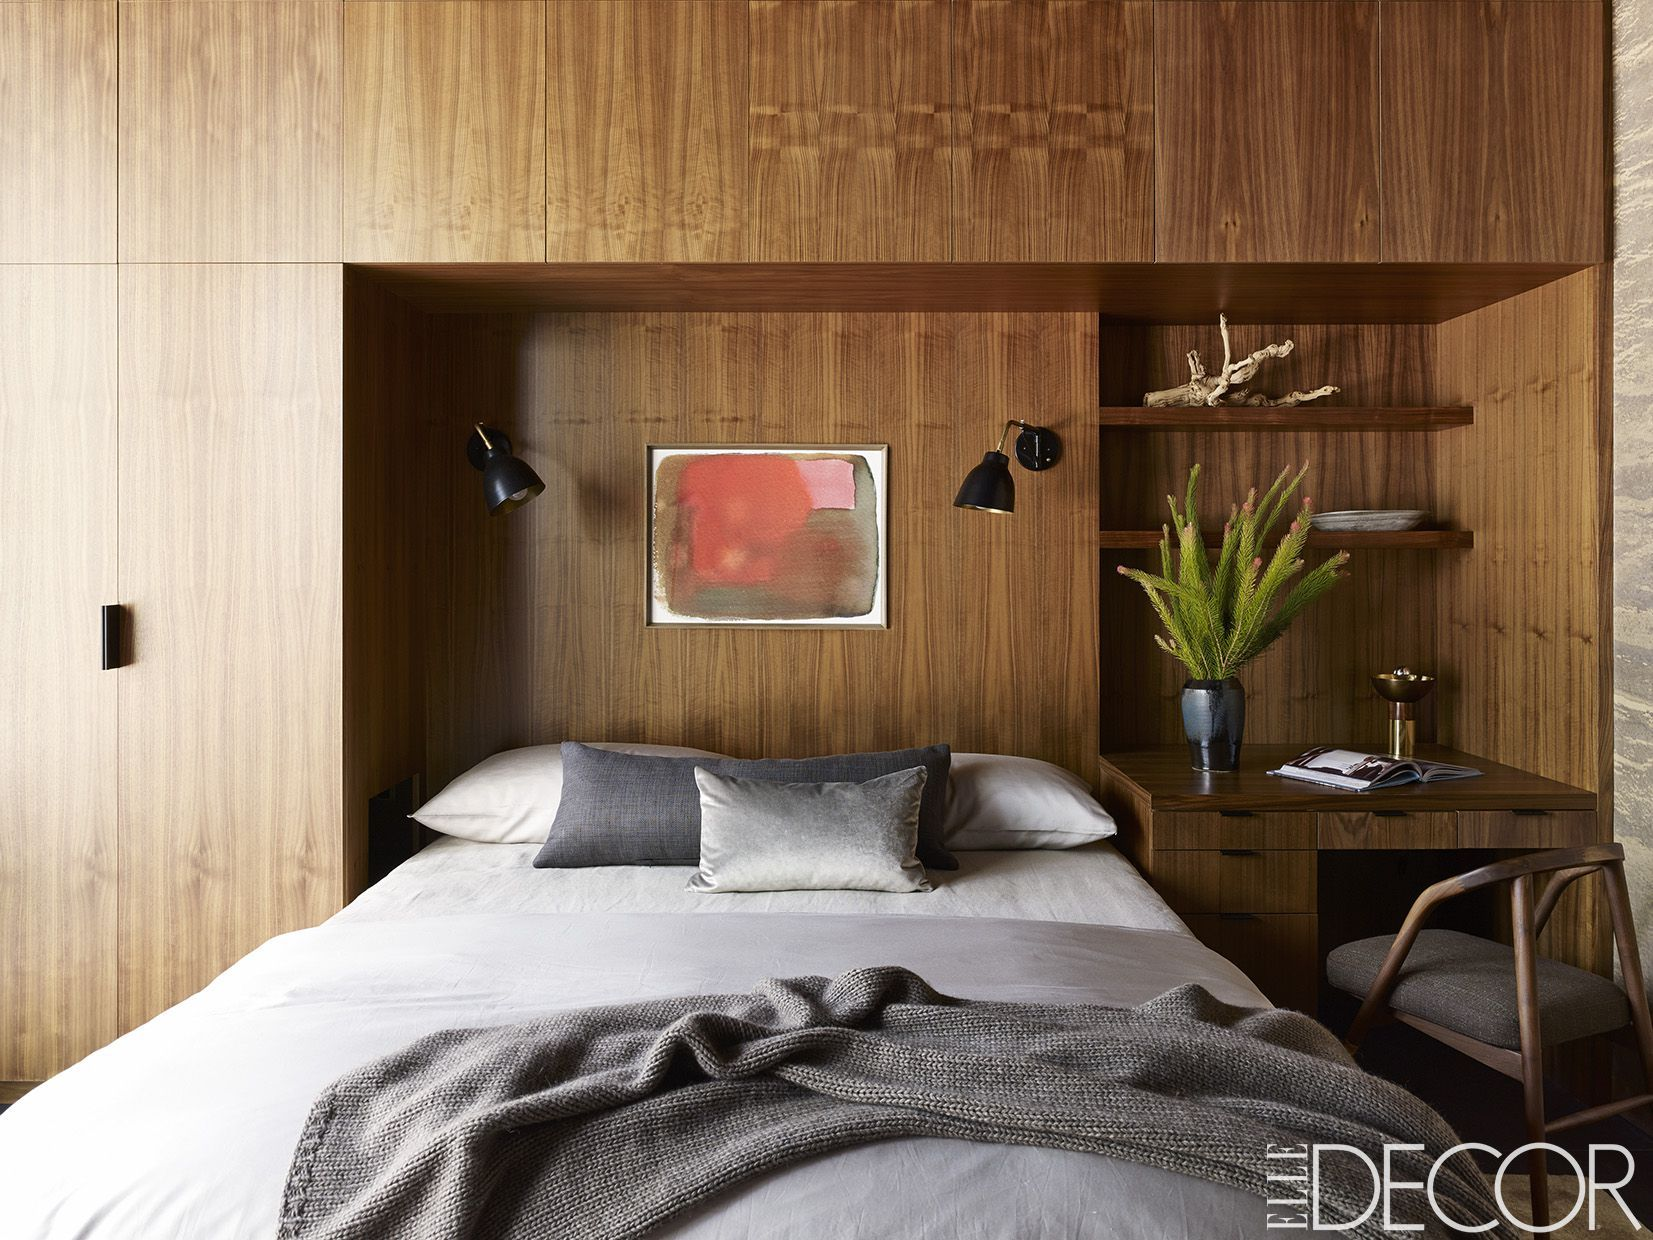 Interior Room Decoration Images